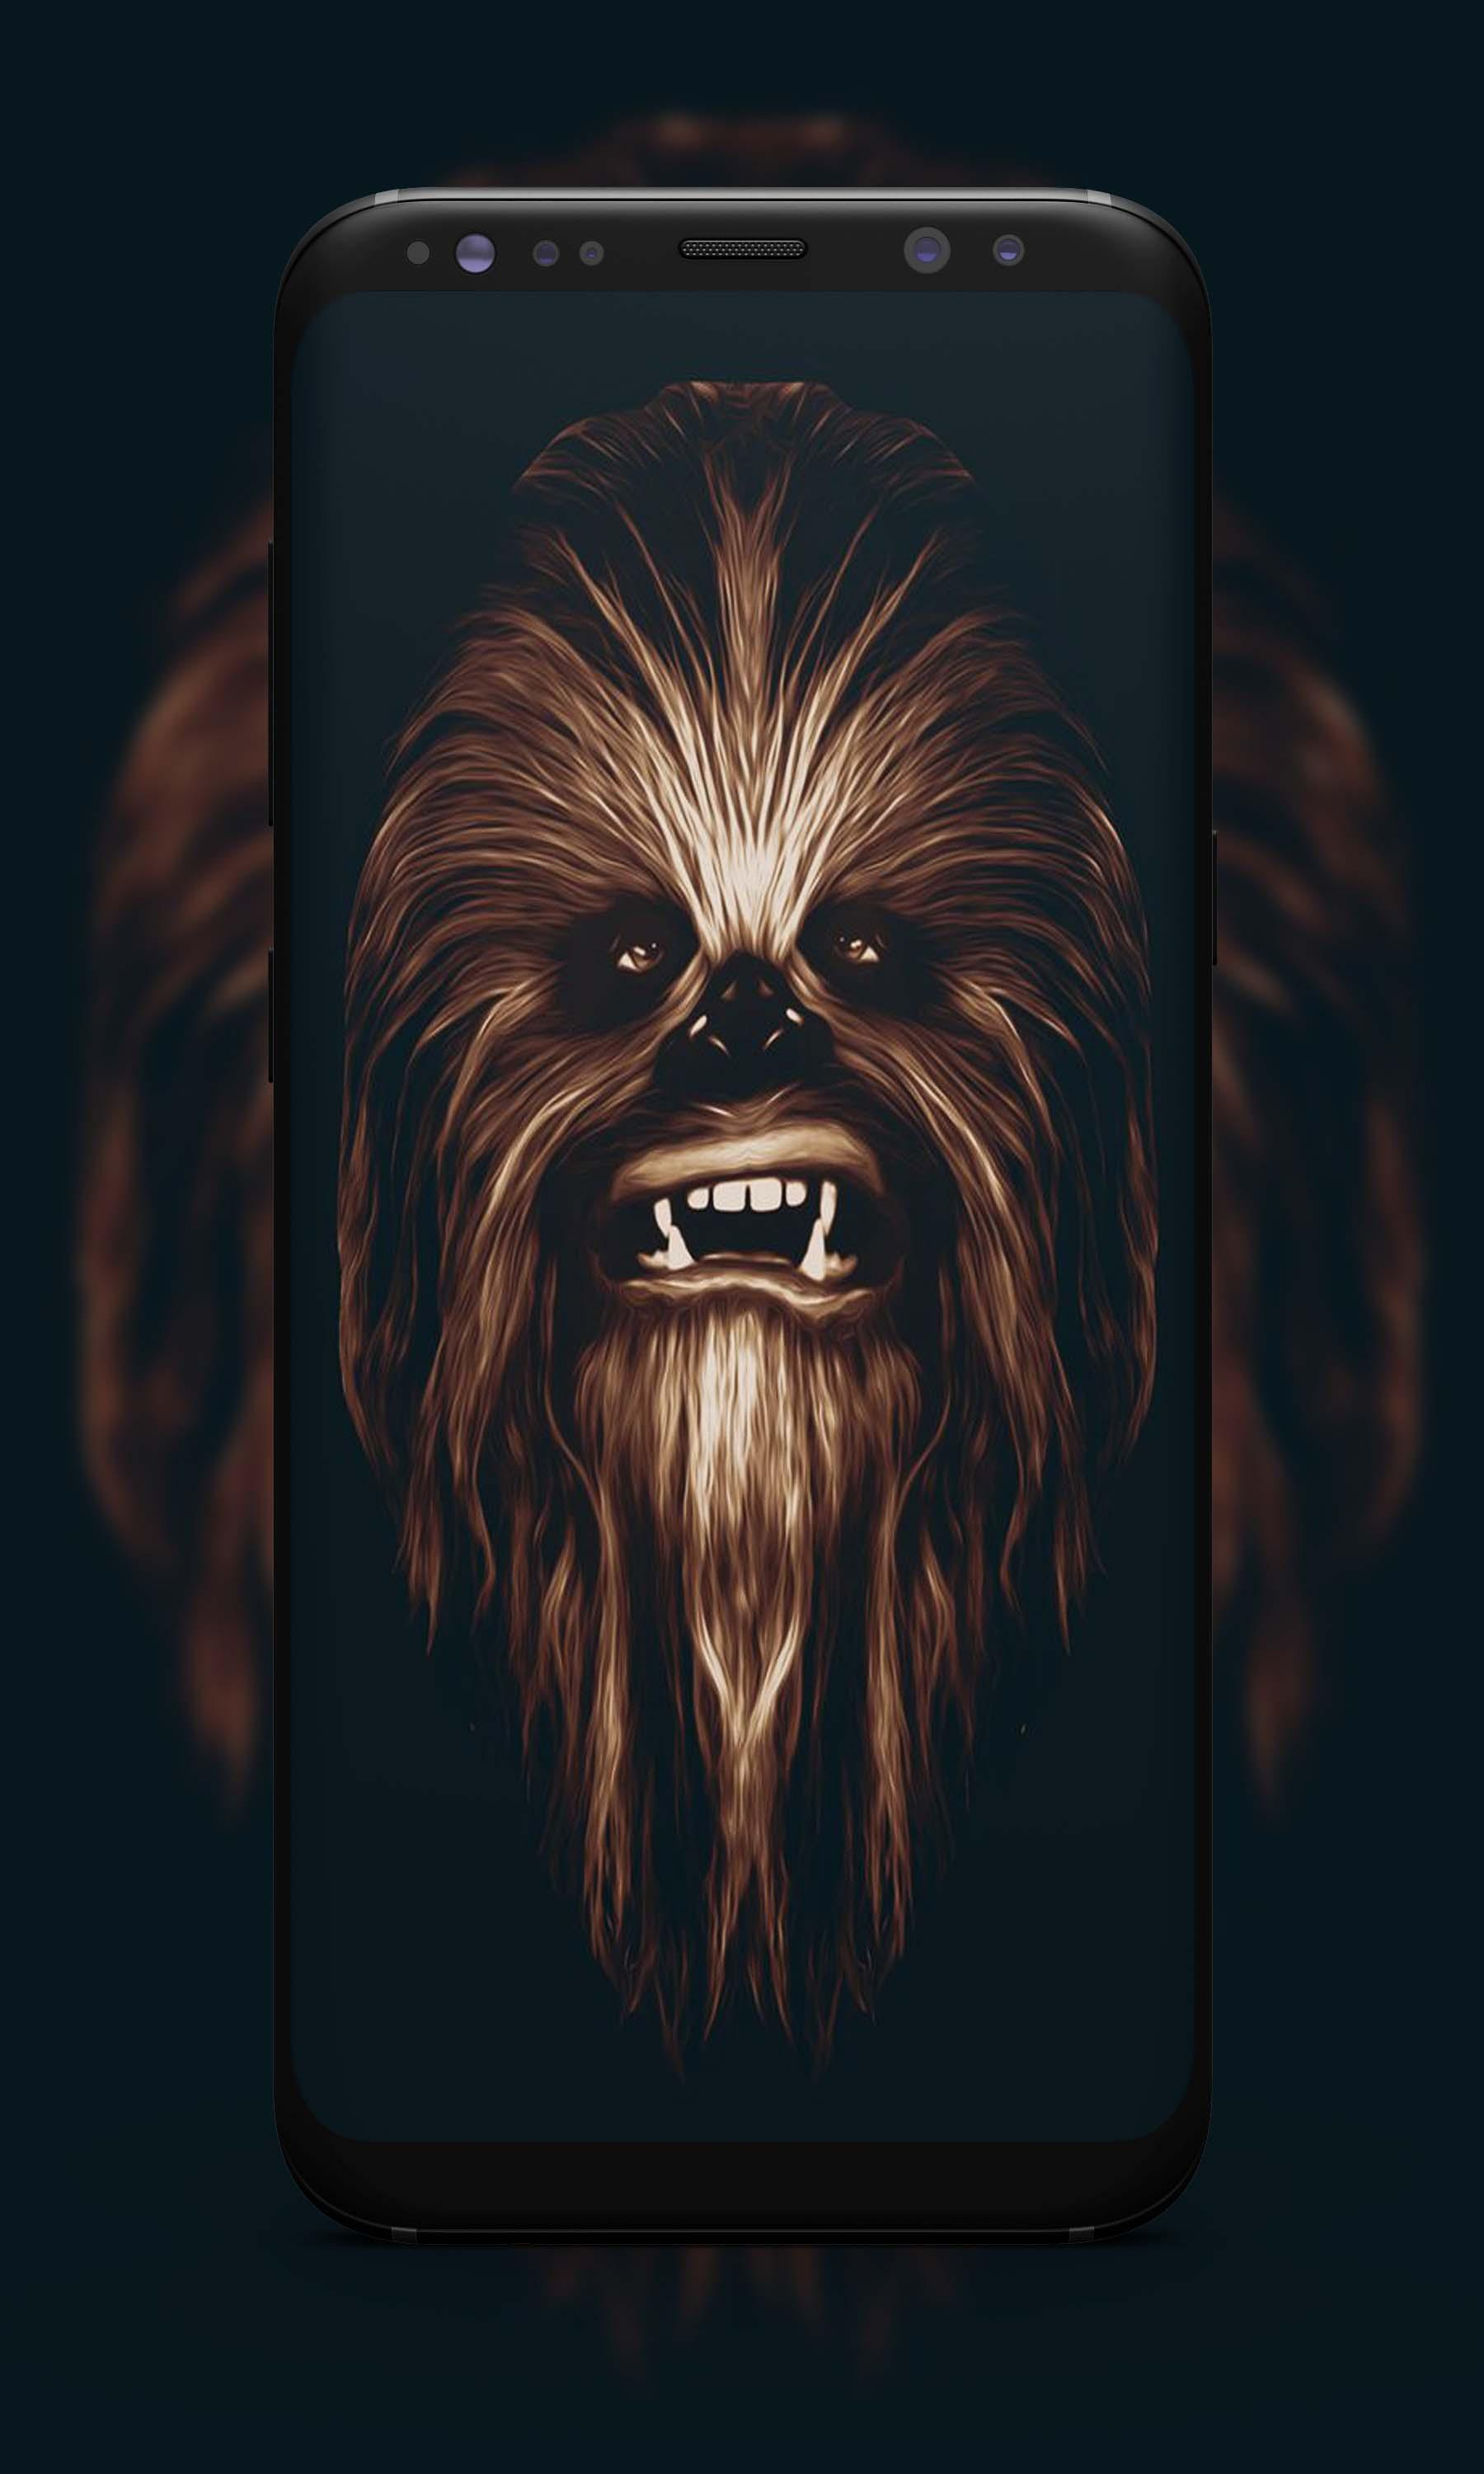 Star Wars Chewbacca Wallpaper Posted By Samantha Anderson